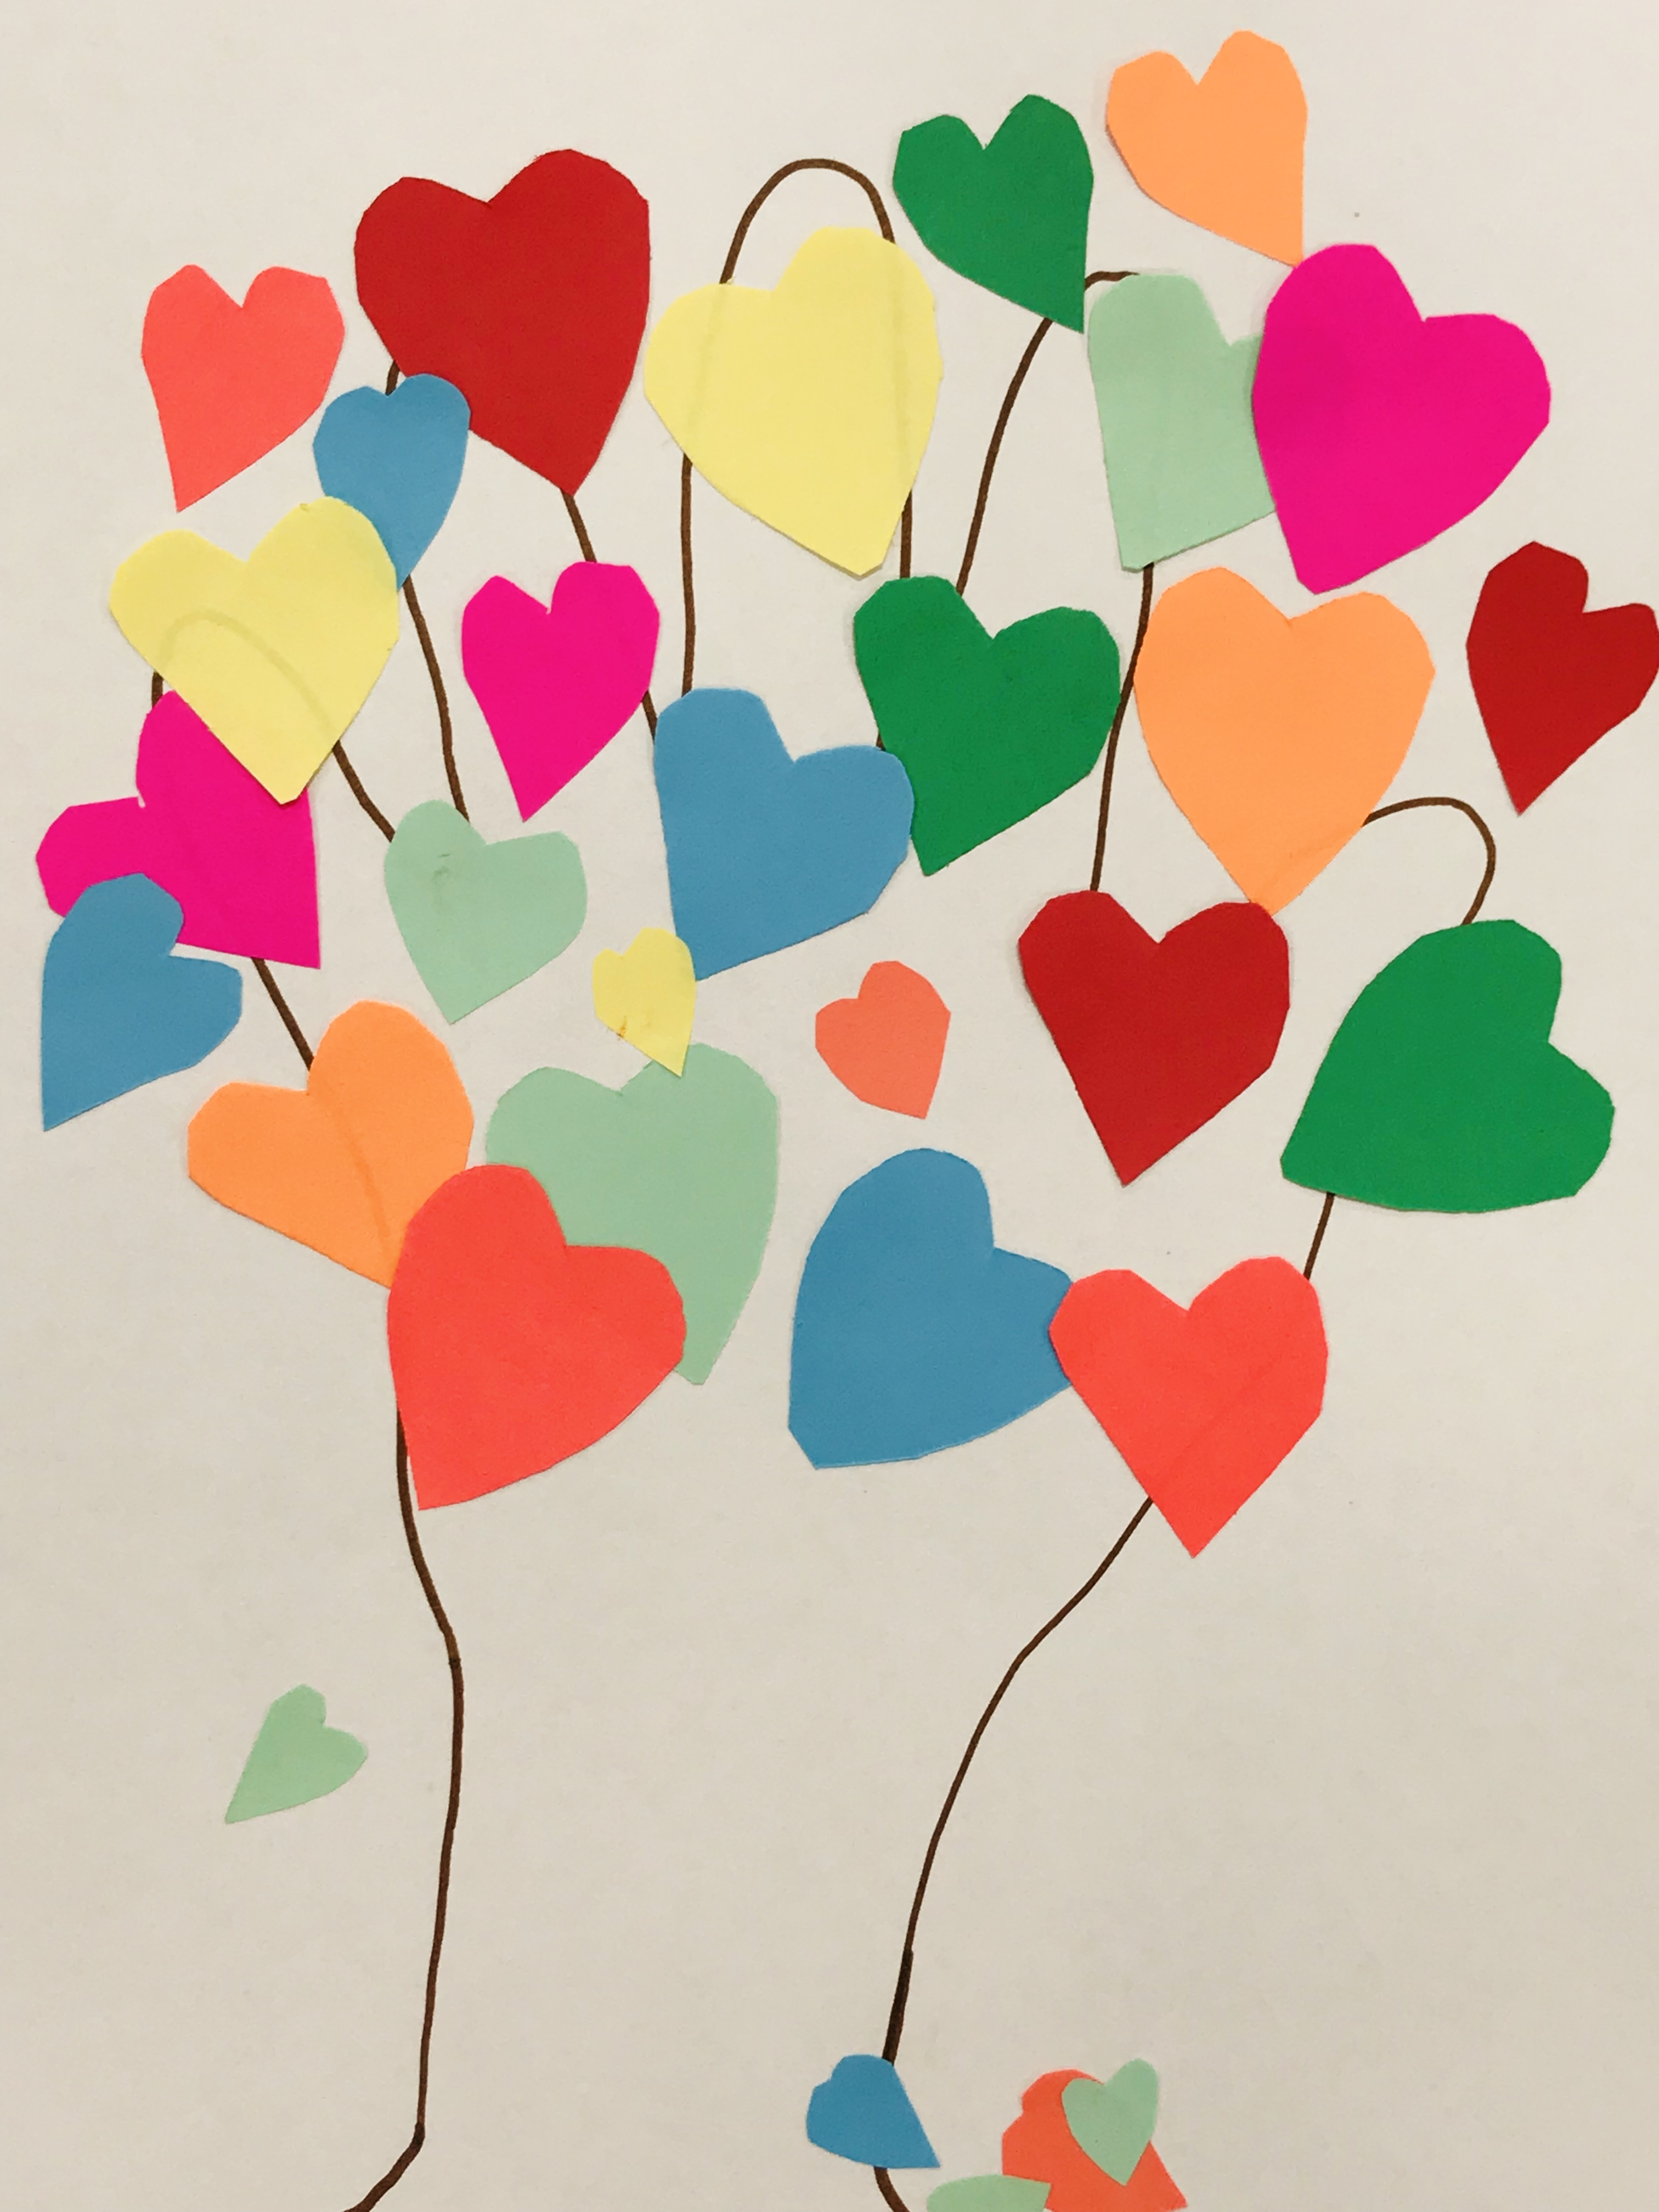 Glued paper hearts on hand print